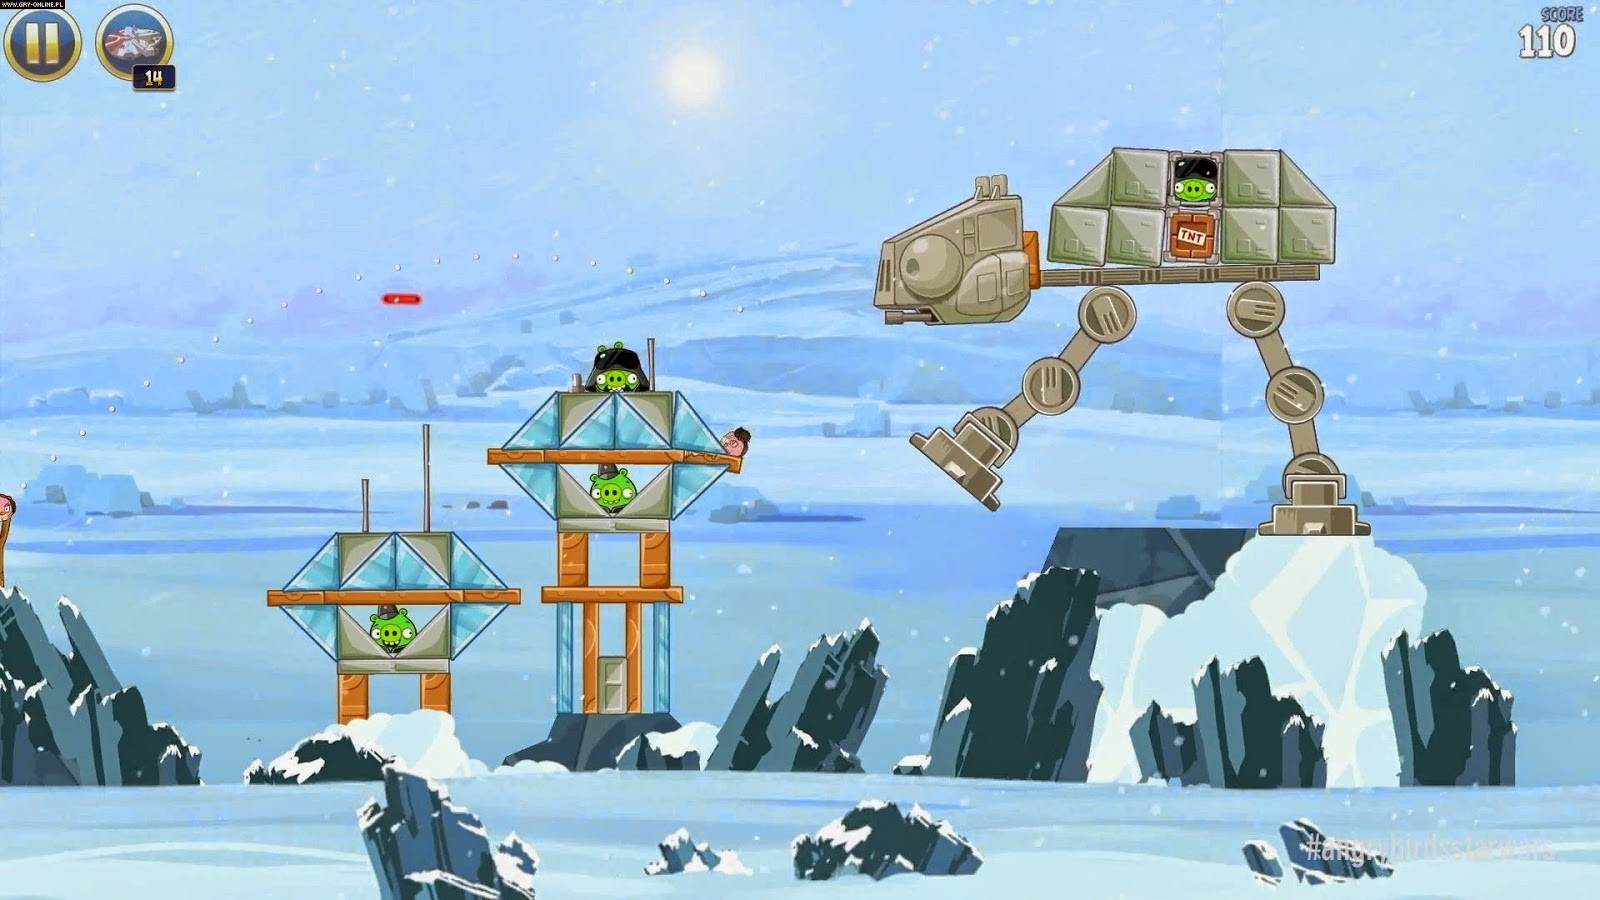 Download Angry Birds Star Wars II For PC,Windows Full ...